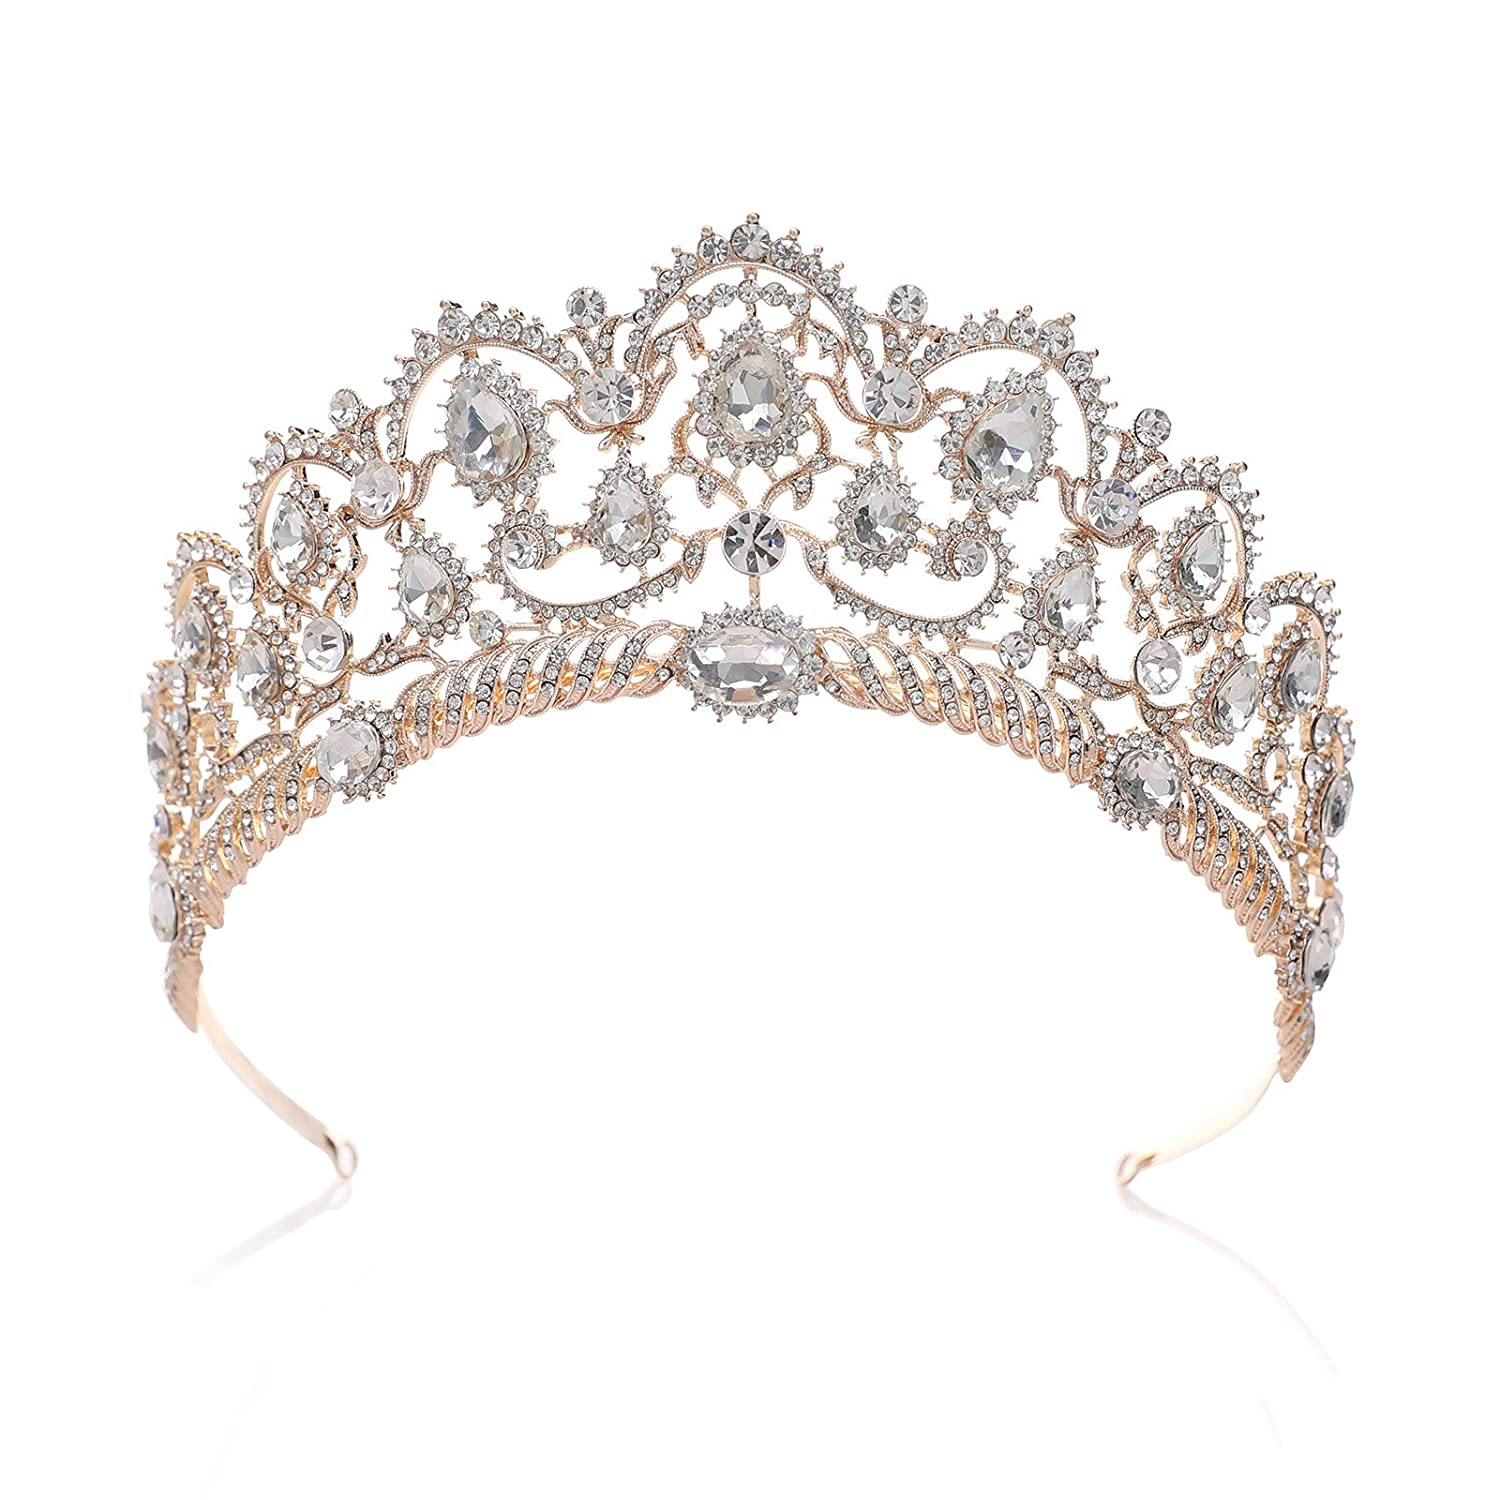 Rose Gold Rhinestone Tiara -Come discover 15 Eclectic Holiday Gifts Under $25 plus Holiday Gift Guides from 7 of Your Favorite Bloggers!